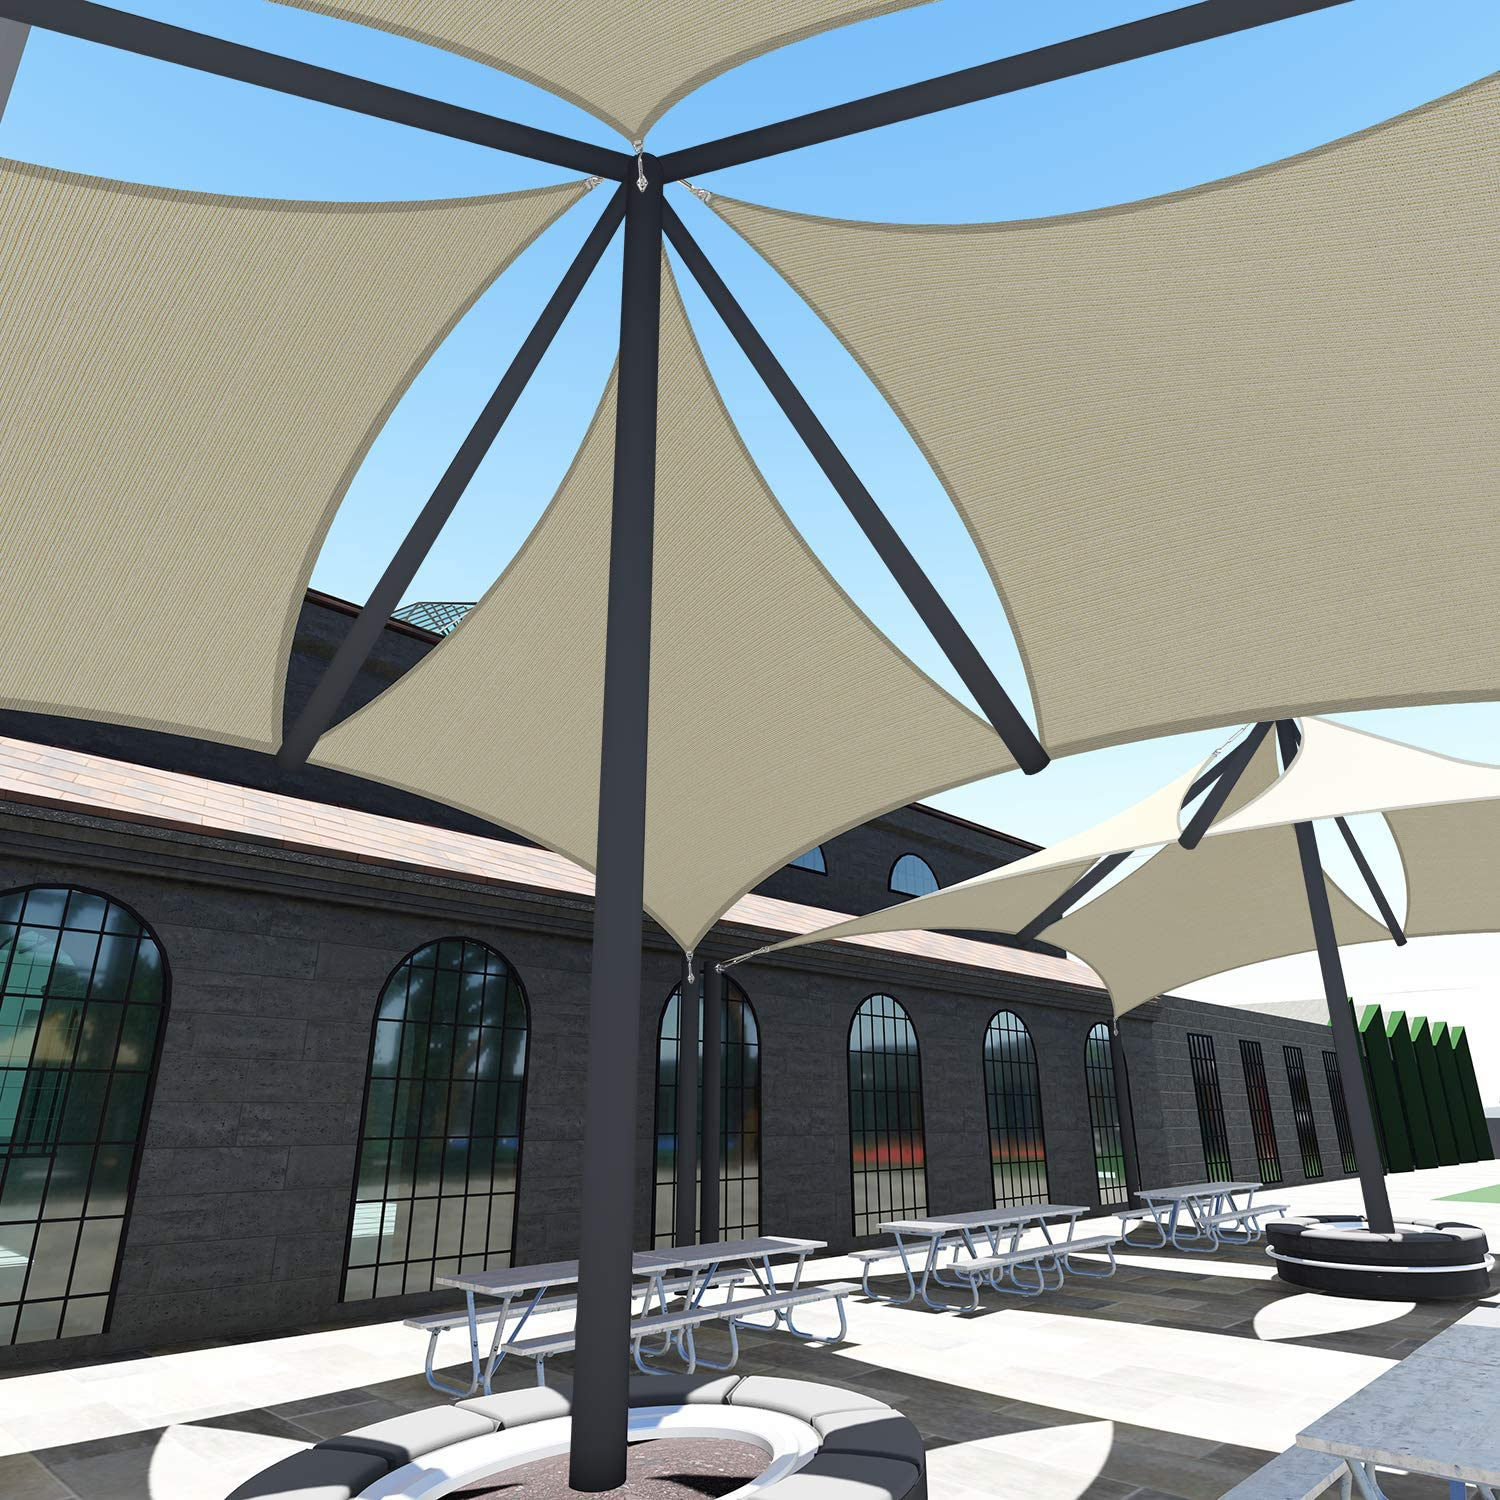 San Jose Mall TANG Sunshades Depot A Ring Wire Design Reinforcemen Cable Steel 1 year warranty